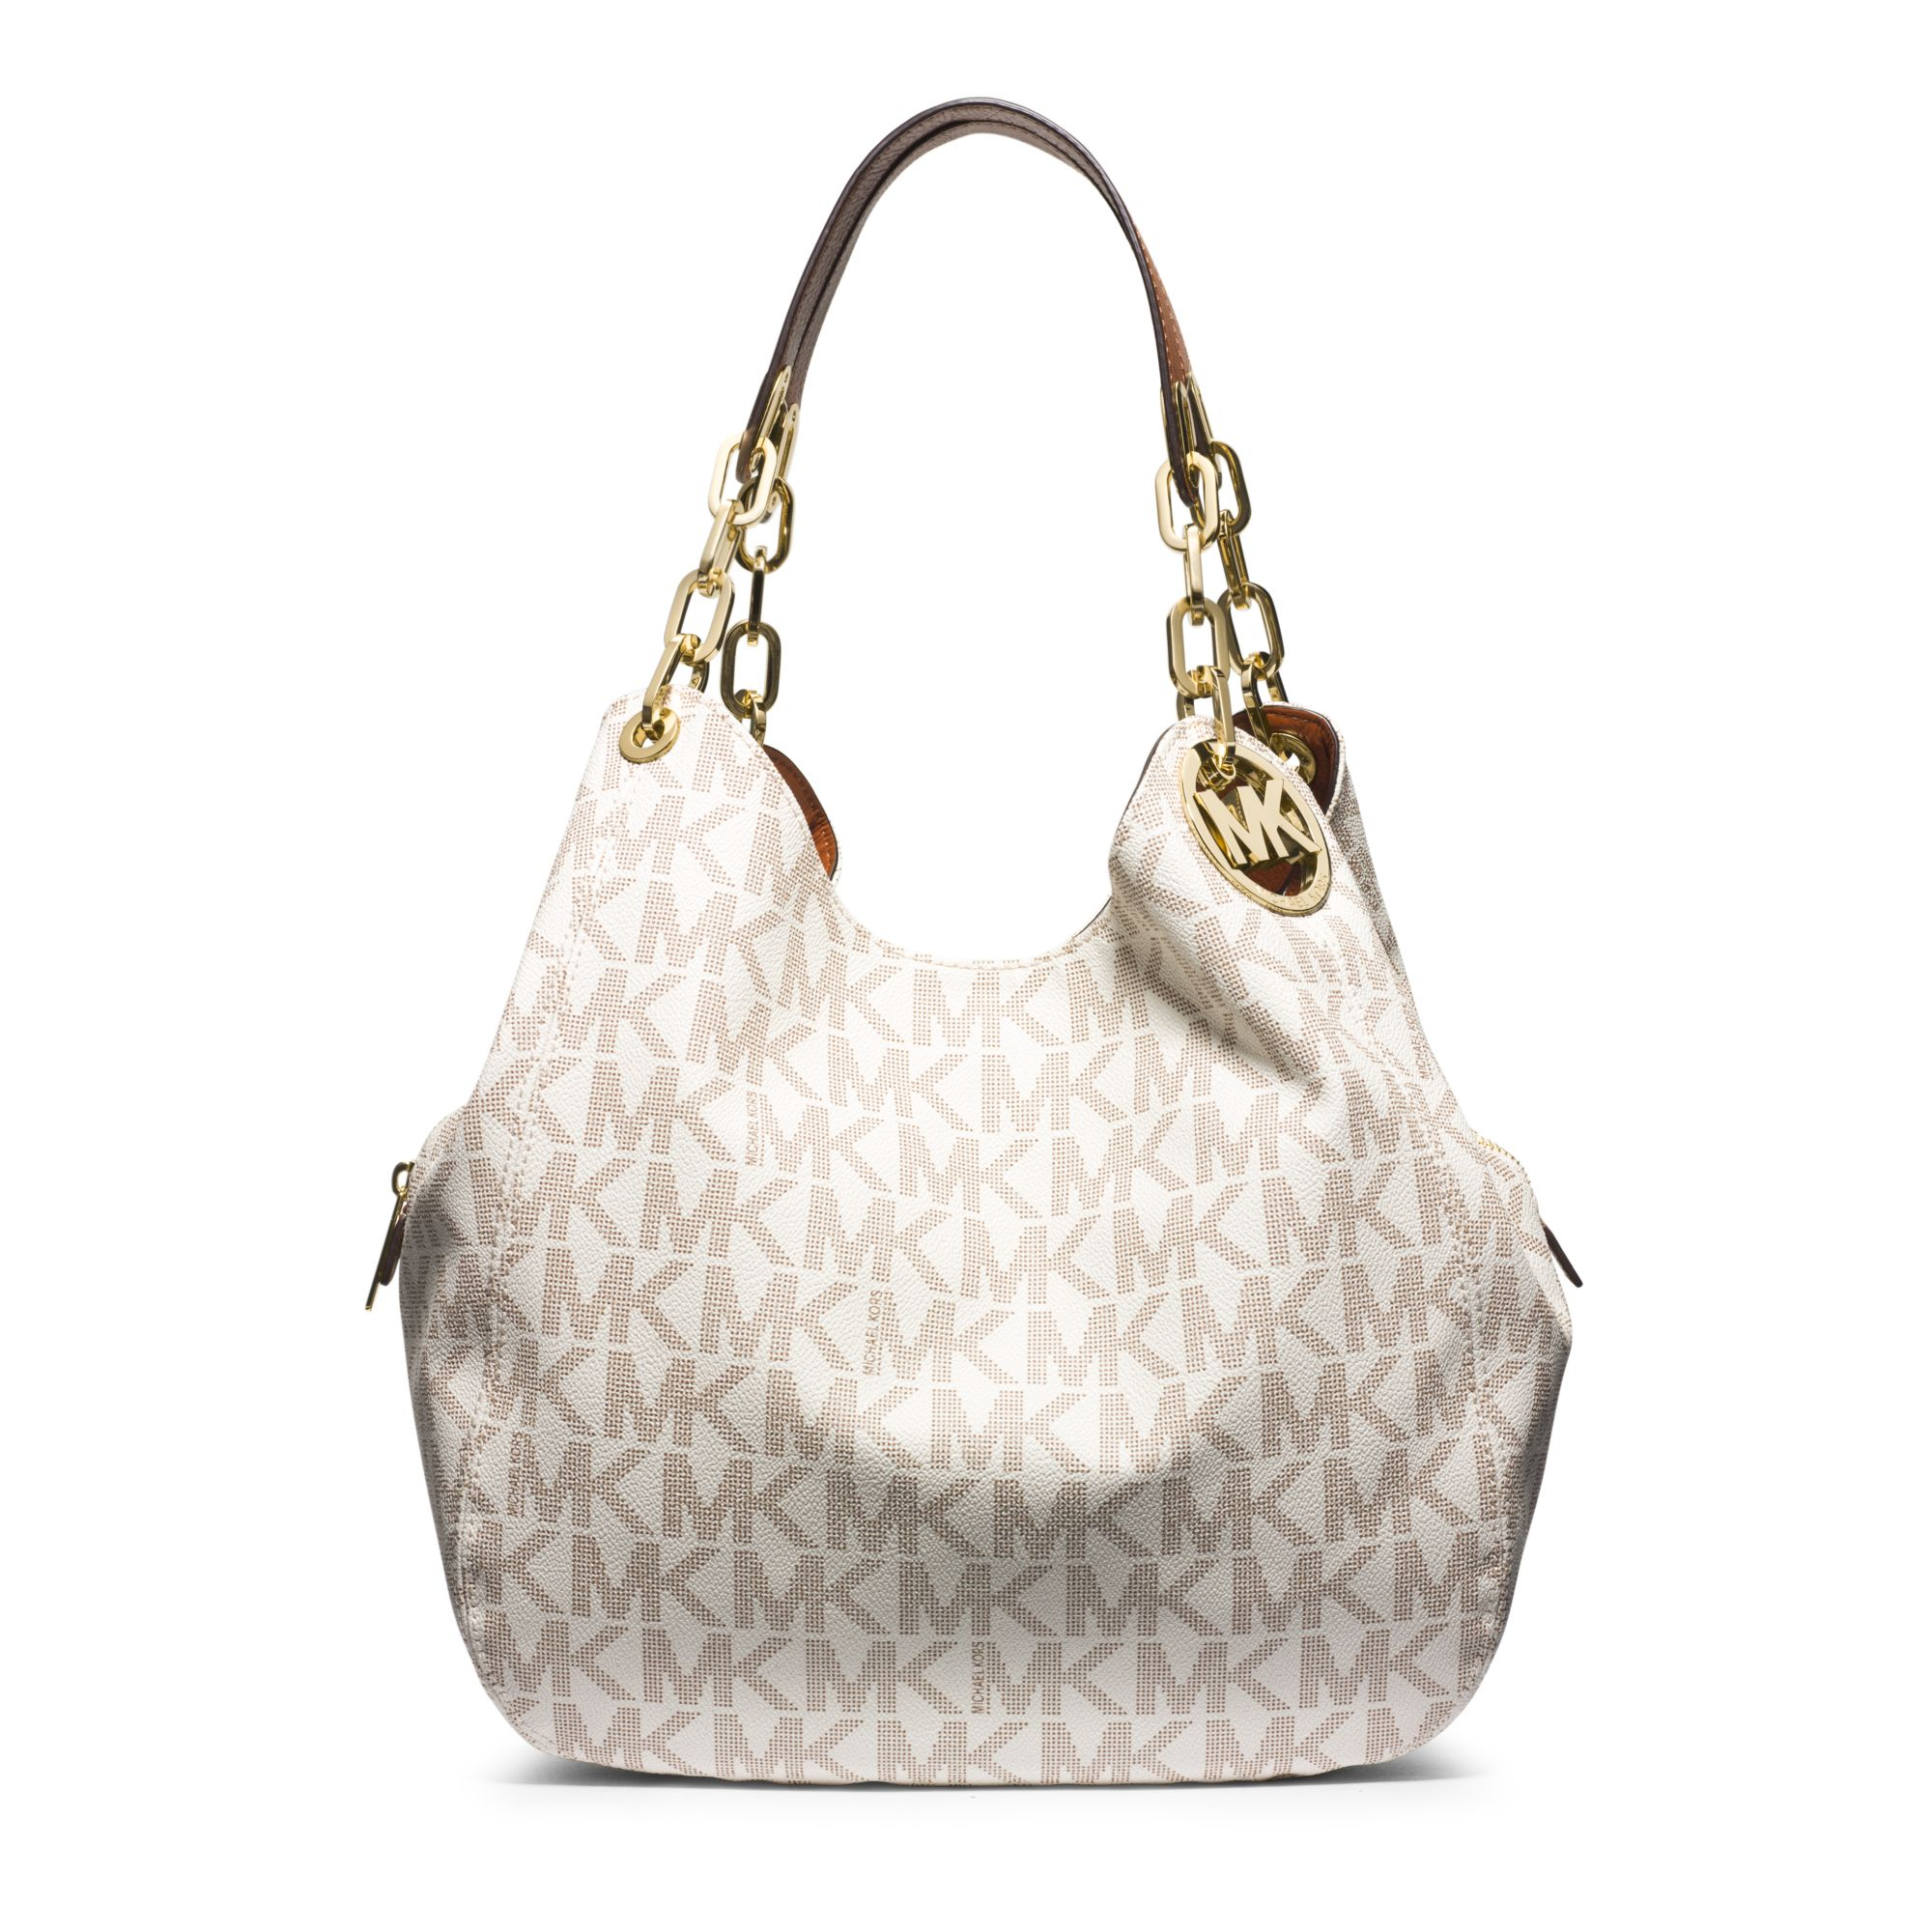 Lyst - Michael Kors Fulton Large Logo Shoulder Bag in White 5bcf749cead98